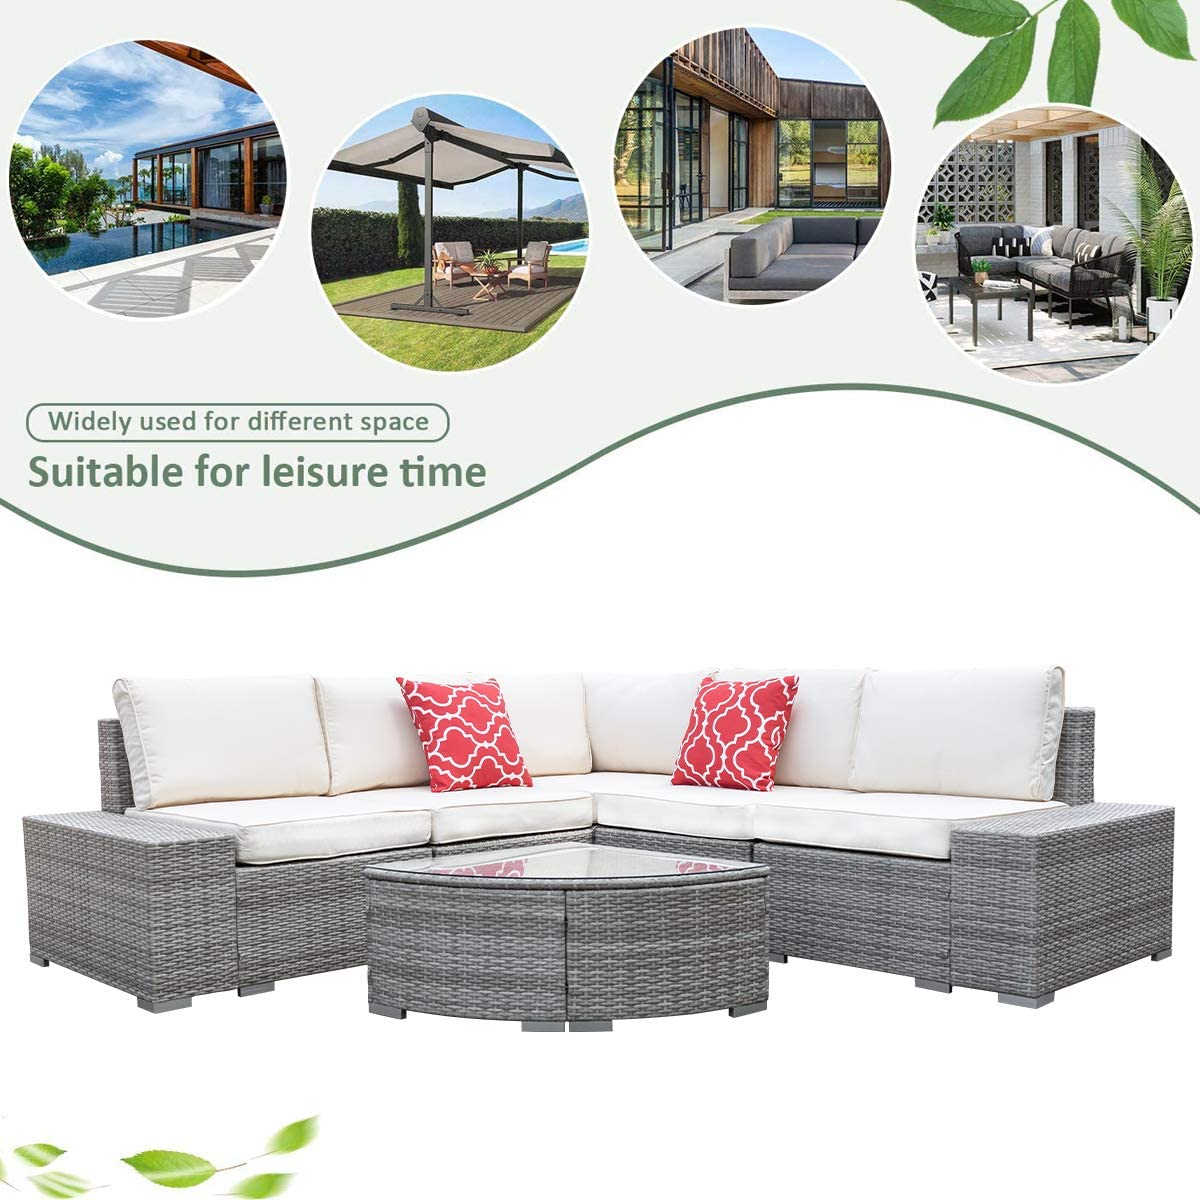 COU Outdoor Wicker Patio Furniture Sofa Set,6pcs All-Weather PE Rattan Porch Sectional Sofa Furniture Set with Glass Table & Cushions & 2 Pillows (Grey)